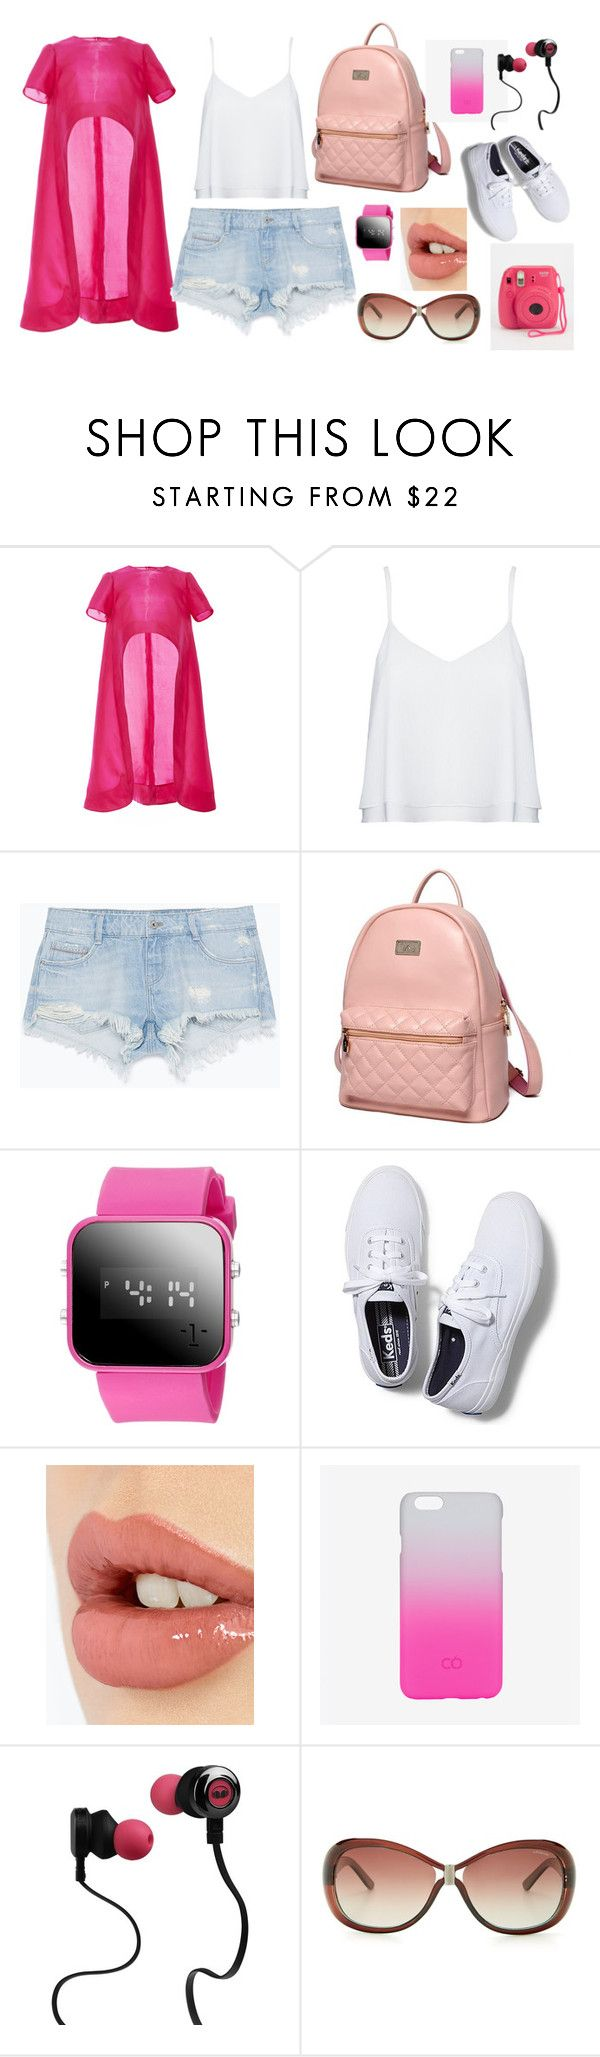 Softy Pink by dinyvia on Polyvore featuring Monique Lhuillier, Alice + Olivia, Zara, Keds, Princess Carousel, C6, Polaroid, Monster, Charlotte Tilbury and Pink